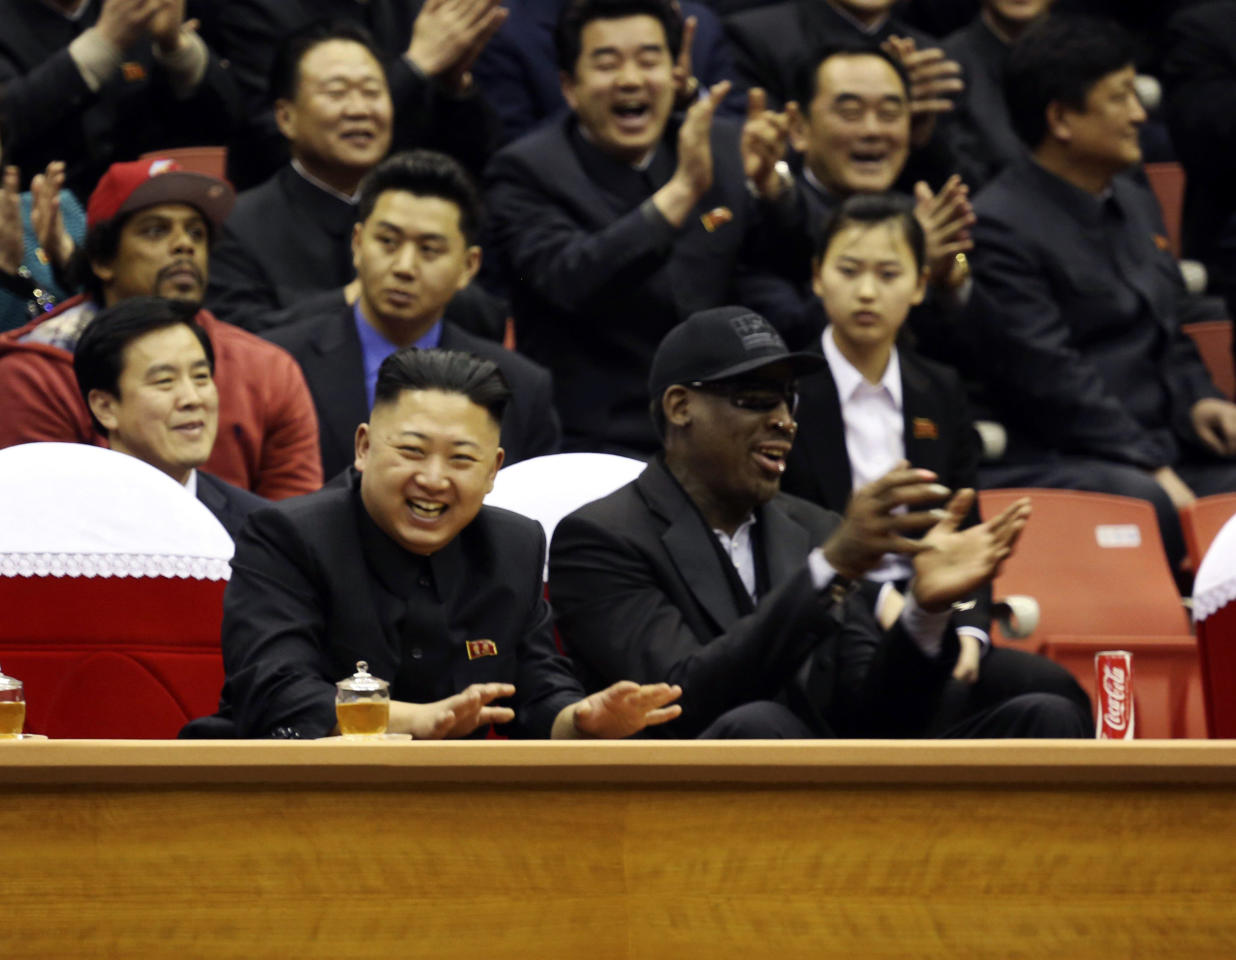 "North Korean leader Kim Jong-un and former NBA star Dennis Rodman watch a basketball game in Pyongyang, North Korea. The American star told the controversial leader ""you have a friend for life"". He is the most high-profile American visitor to the country since Kim Jong-un took power (REUTERS/VICE/Handout)"